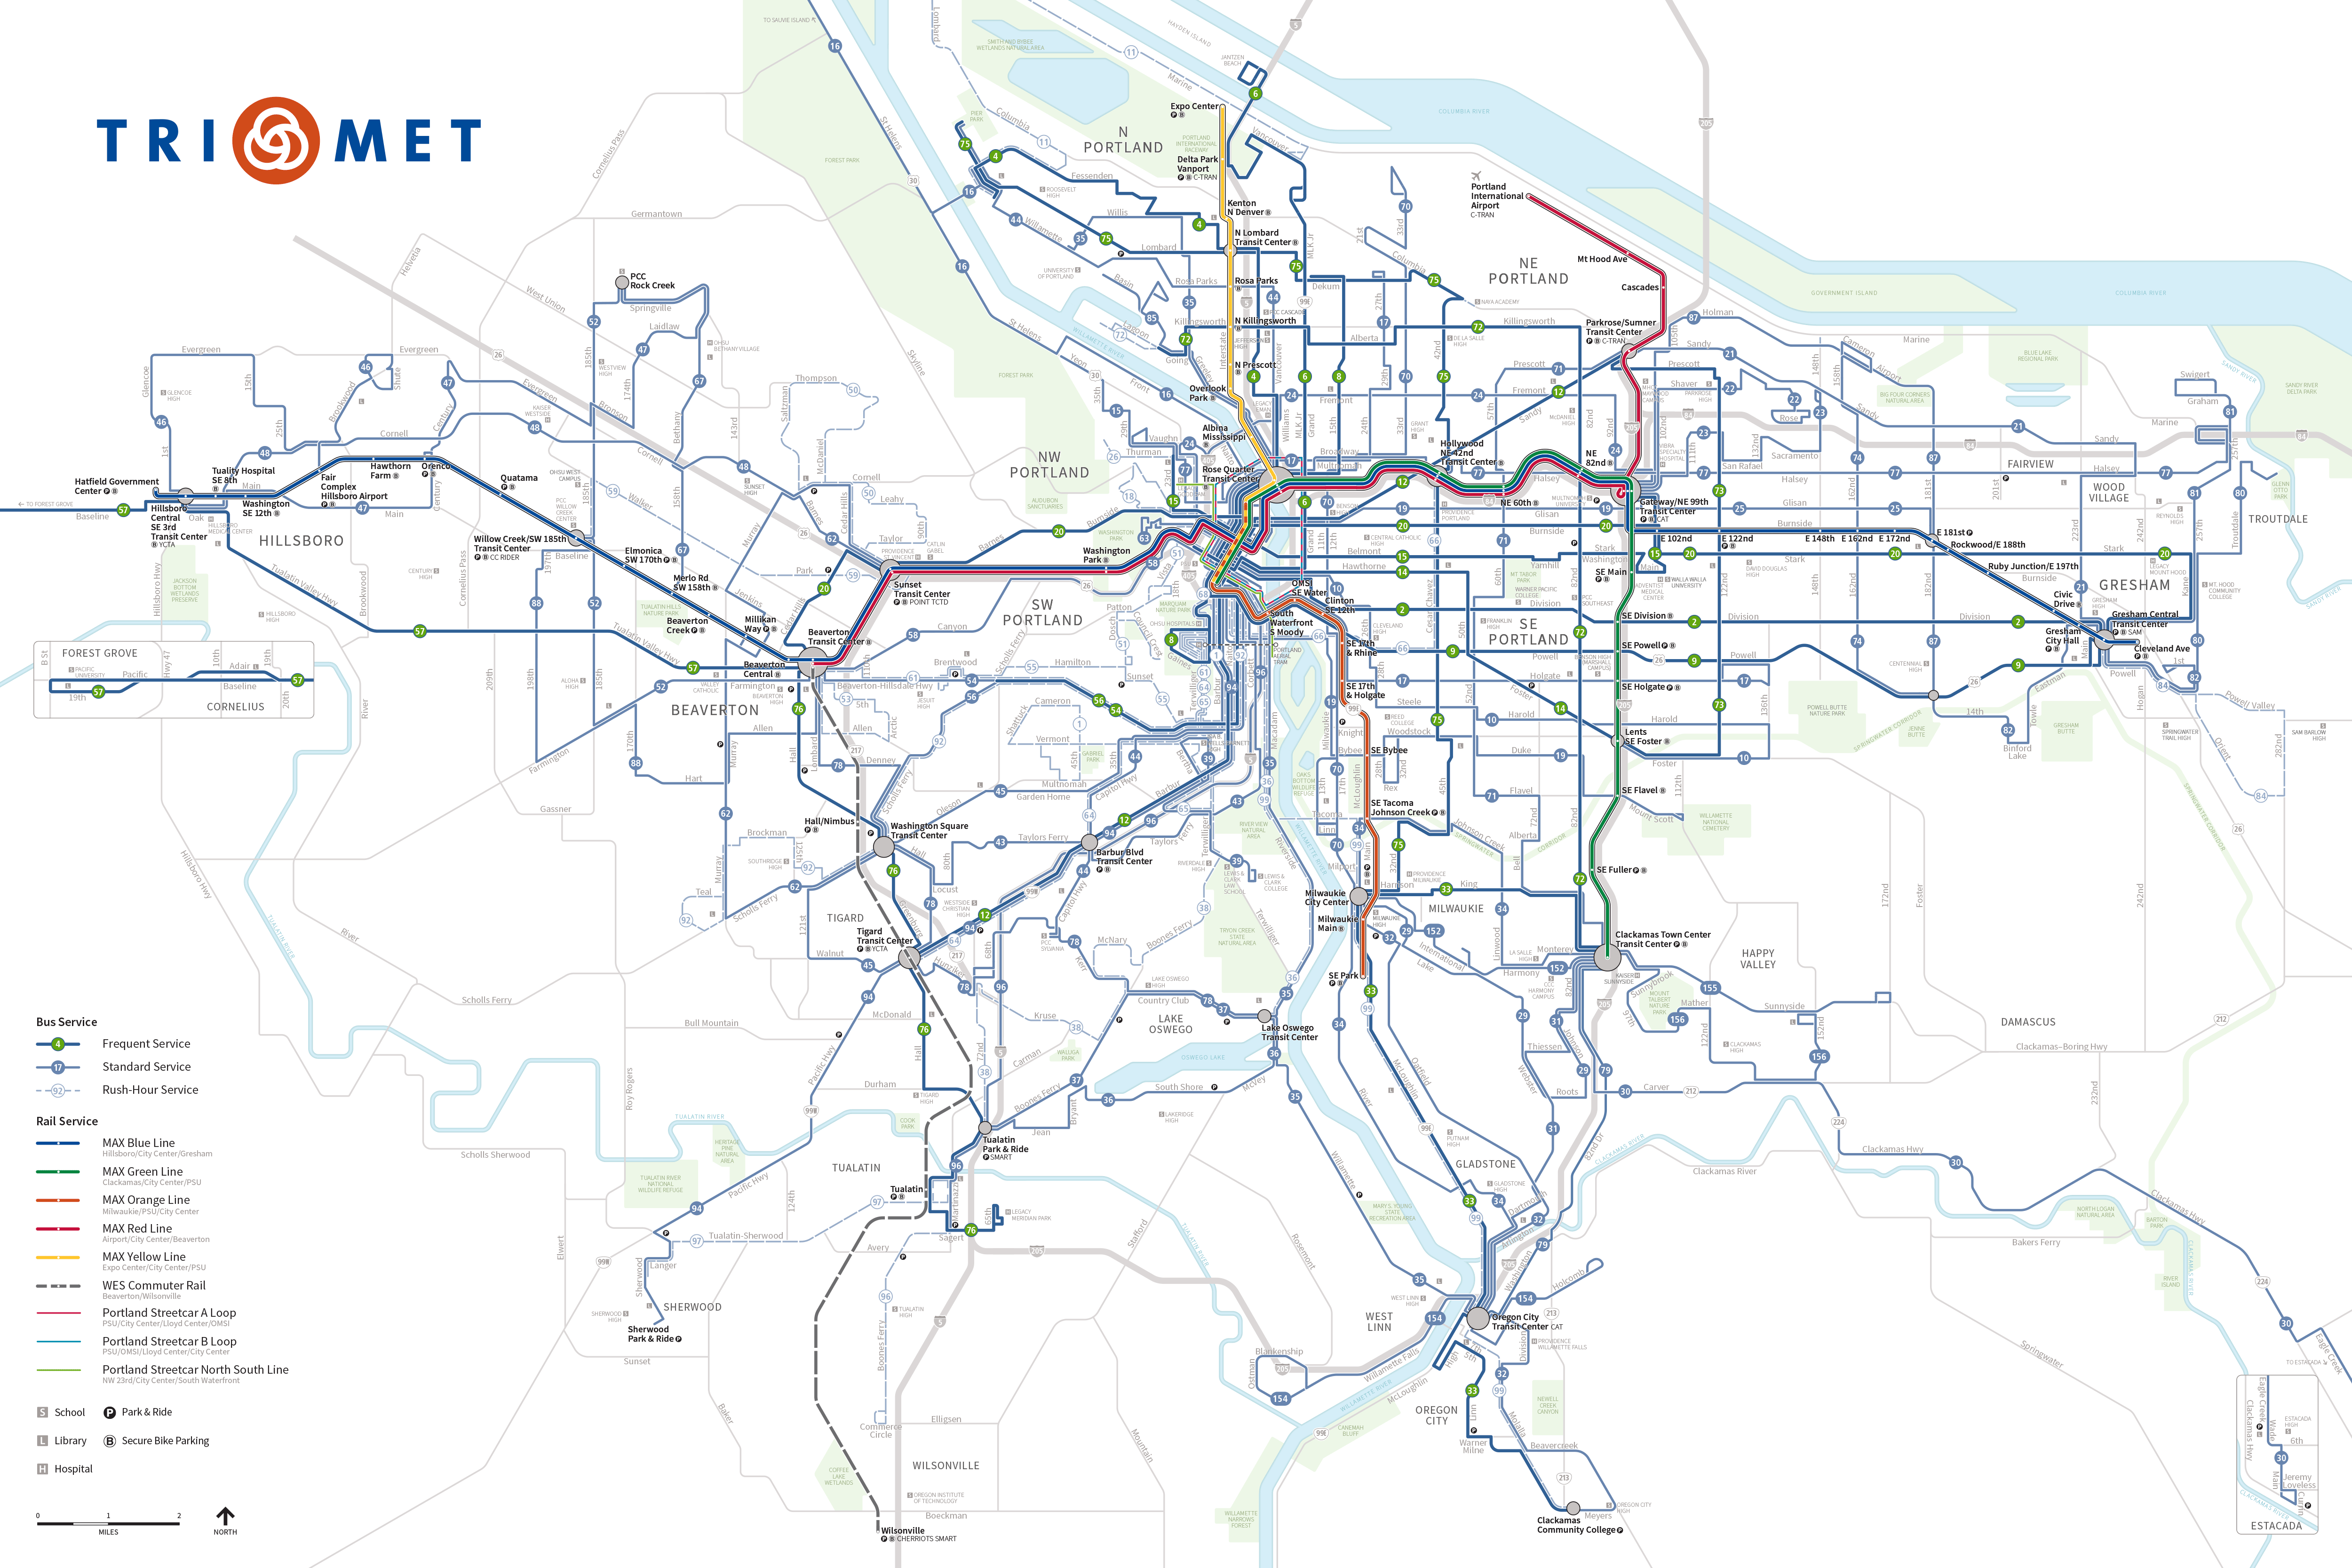 U Of Oregon Map.Maps And Schedules For Trimet Buses Max And Wes